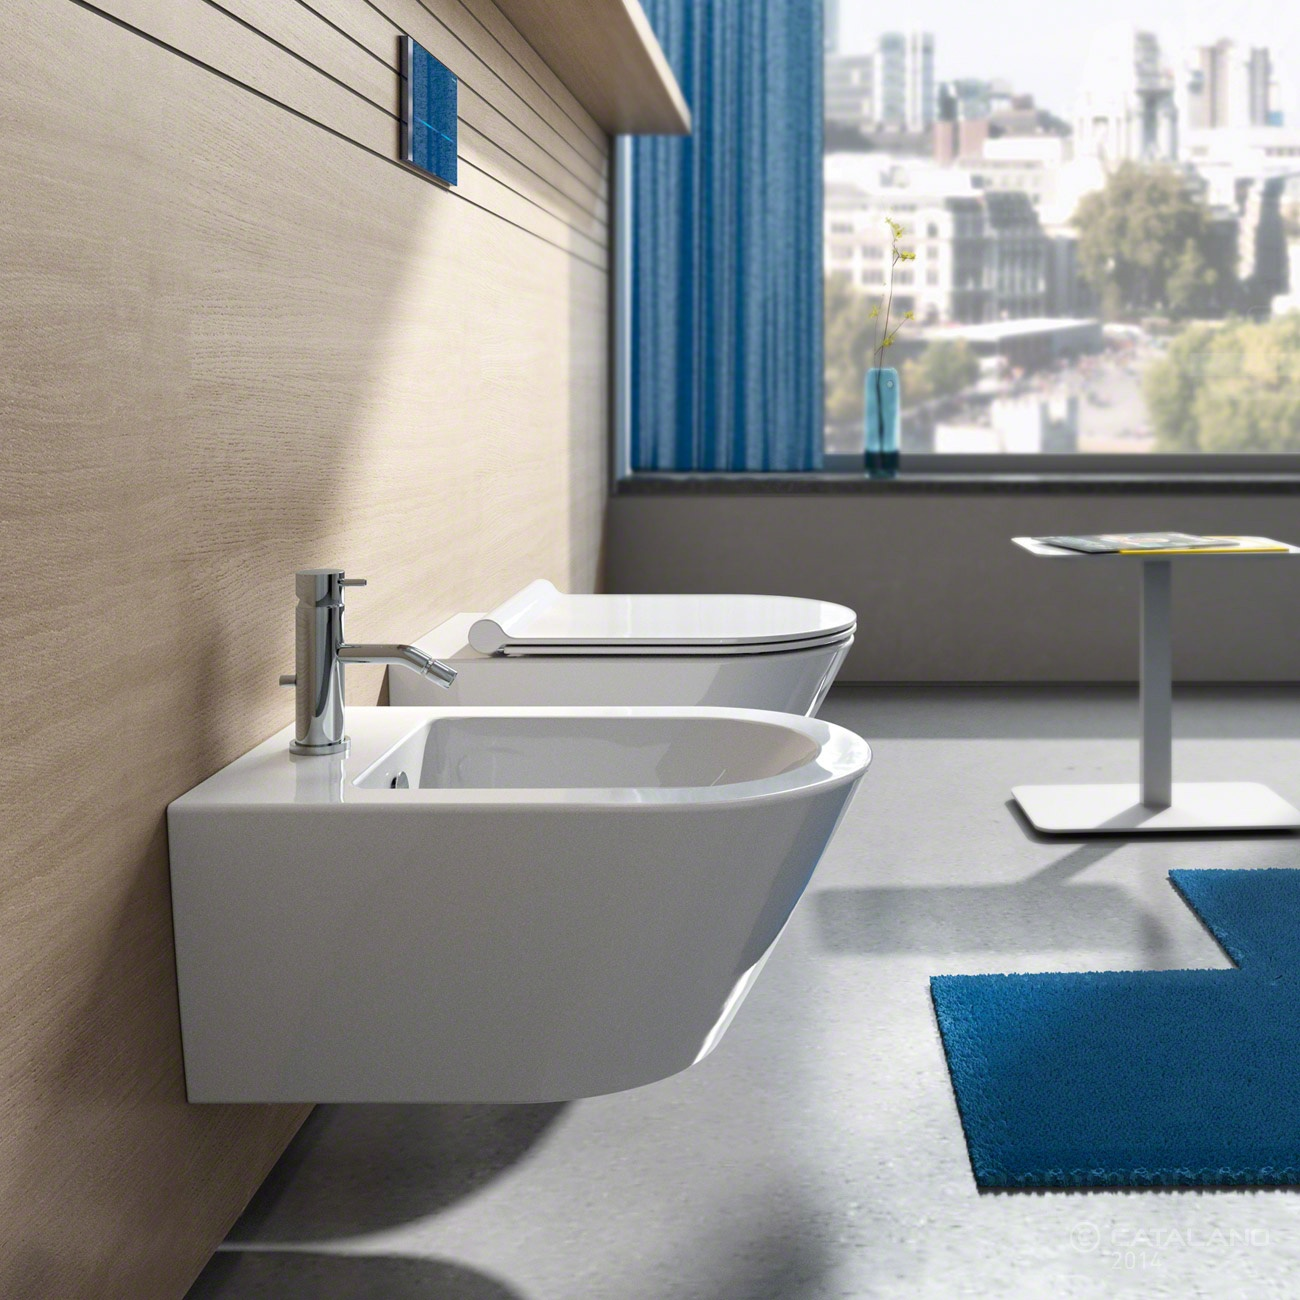 NEW LIGHT     Vaso+Coprivaso+Bidet    CATALANO